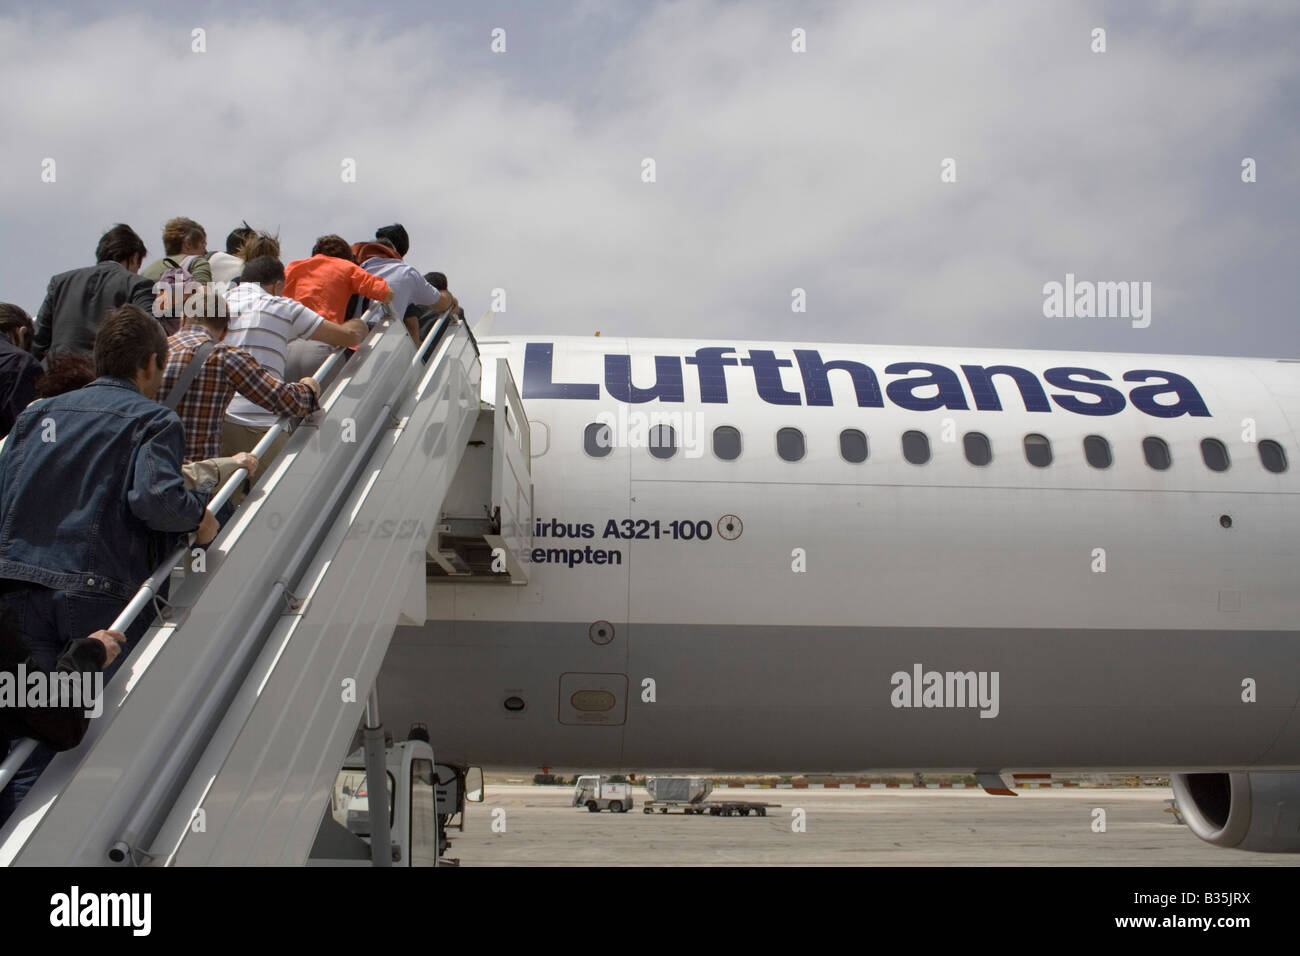 Commercial air travel. Passengers boarding a Lufthansa Airbus A321 airliner by means of a mobile staircase or ramp - Stock Image